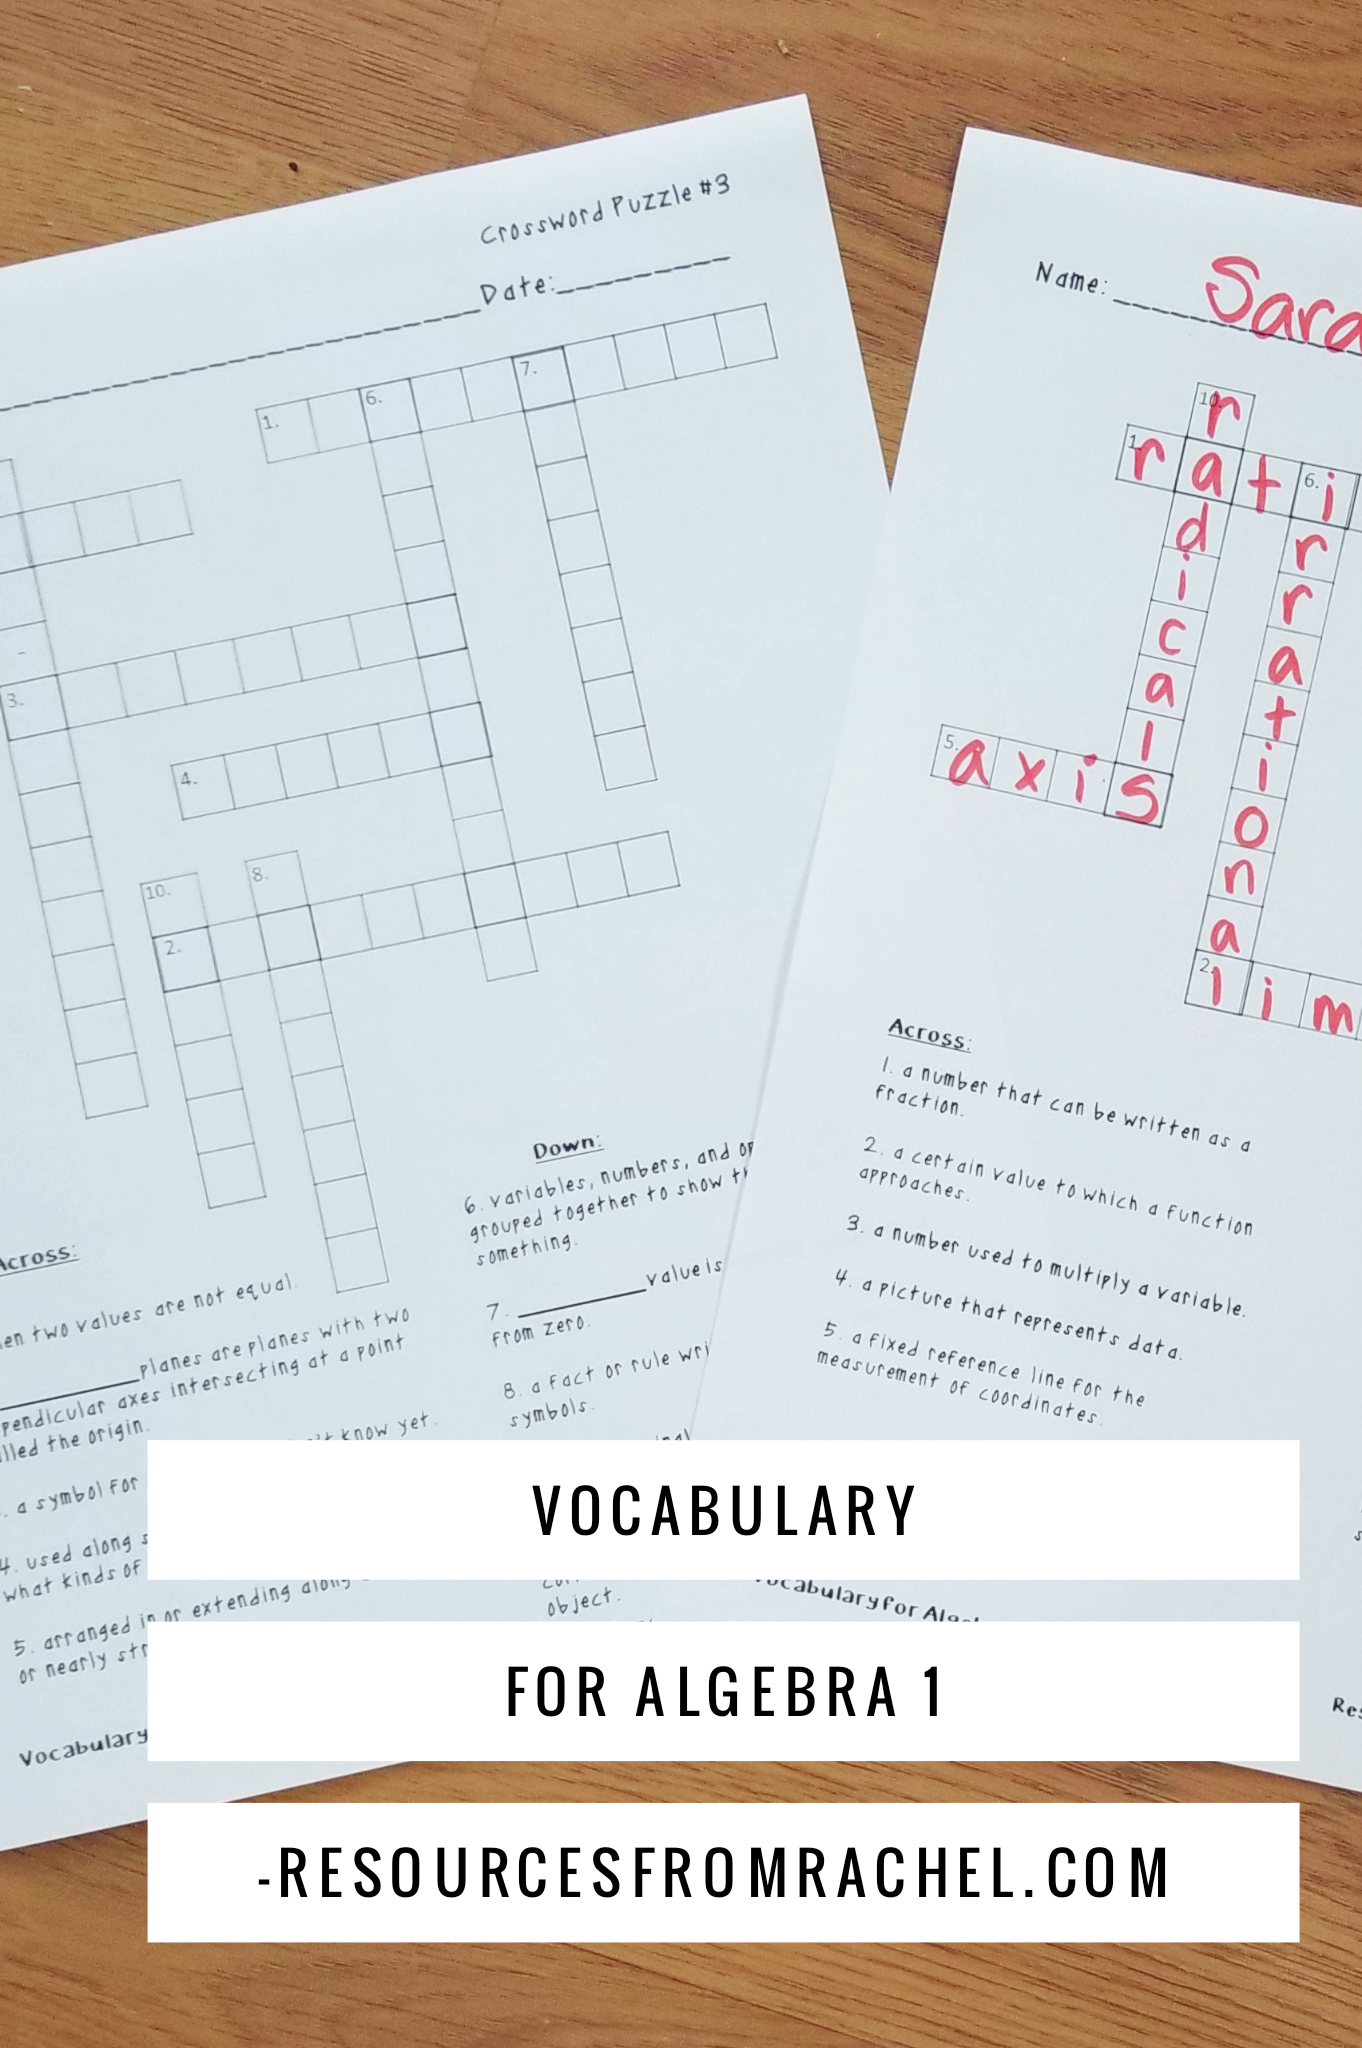 The Packet Covers 100 Vocabulary Words For Algebra 1